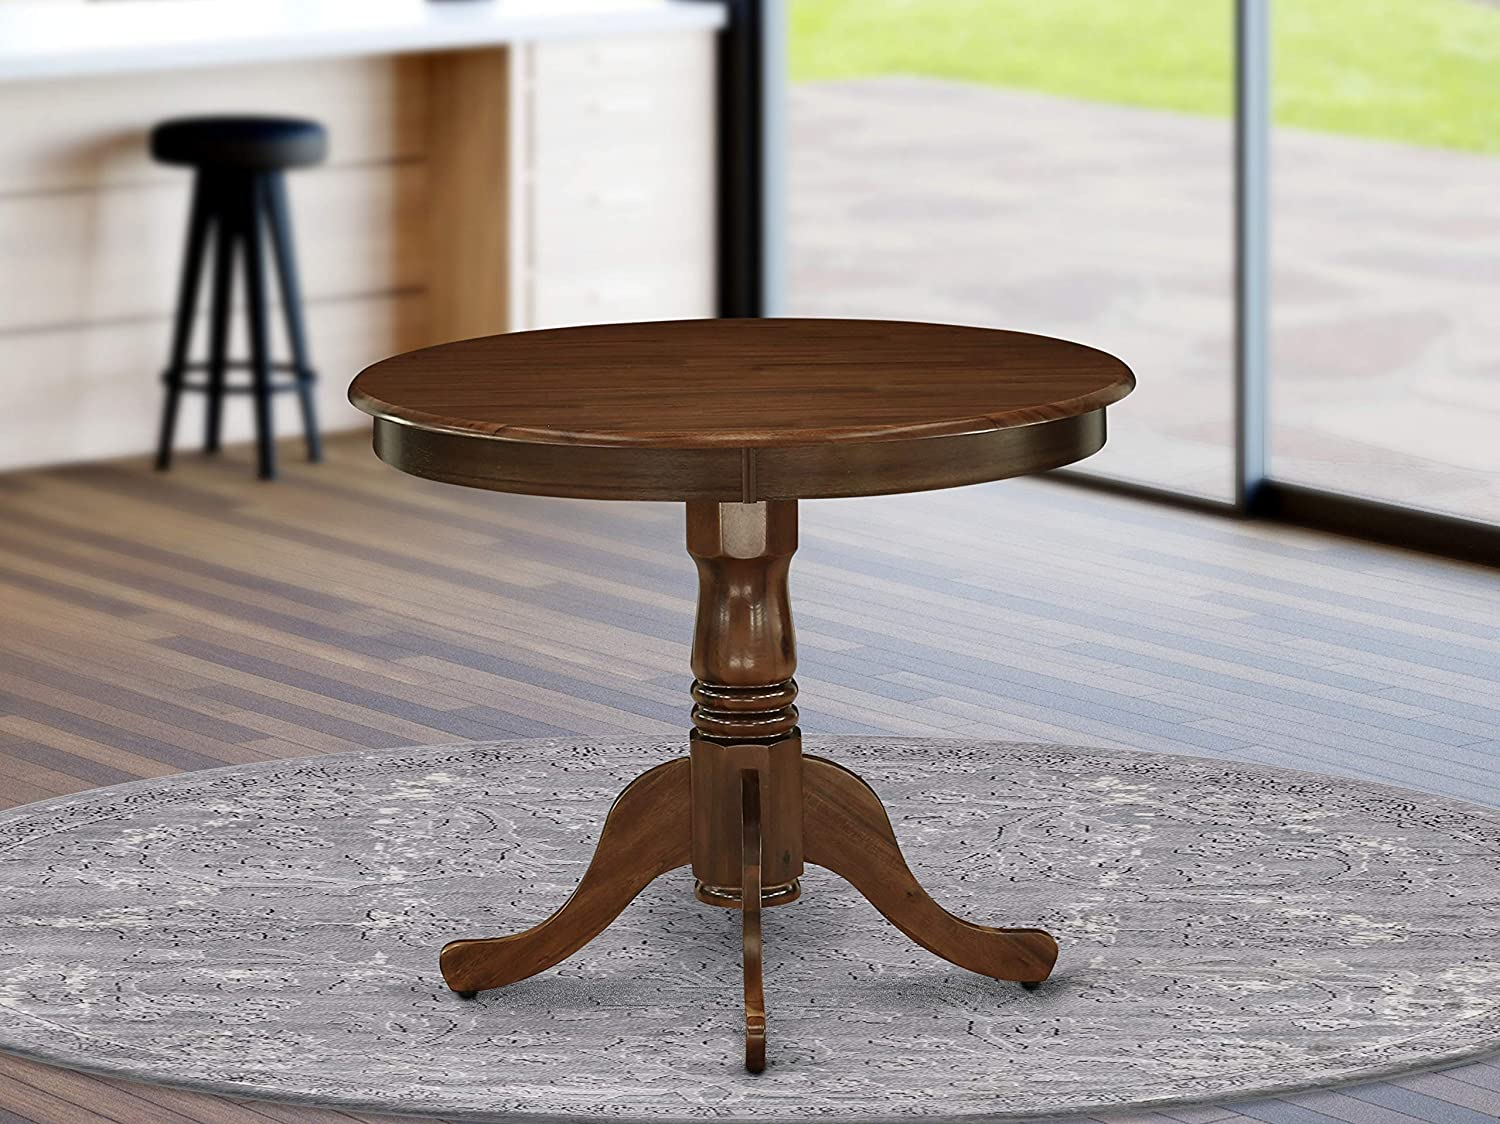 ANT-AWA-TP Antique Dining Table Made of Rubber Wood, 36 Inch Round, Walnut Finish